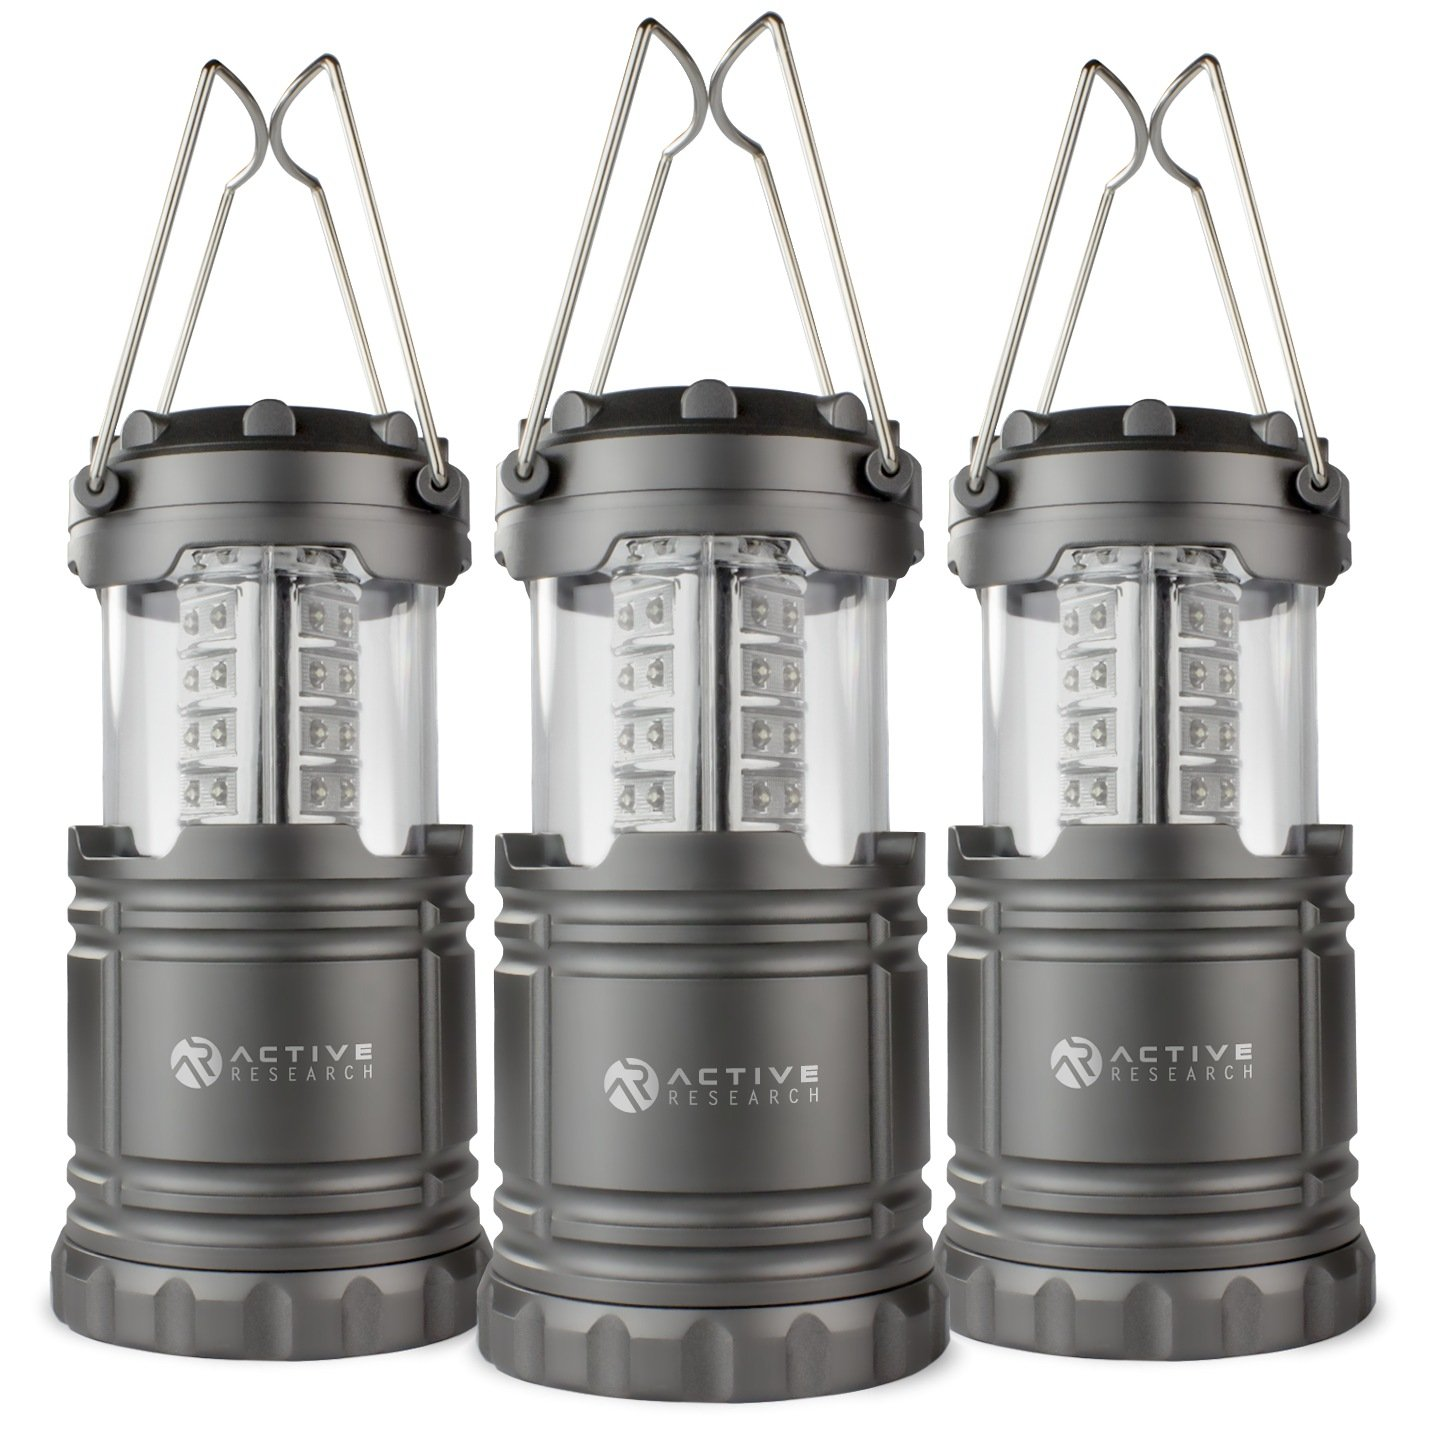 Active Research LED Lantern - Best Ultra Bright Portable Flashlight - Water Resistant Lantern For Camping, Outdoors, Hunting, Emergencies, Hurricanes, Outages - 30 LED Battery Powered - 3-Pack